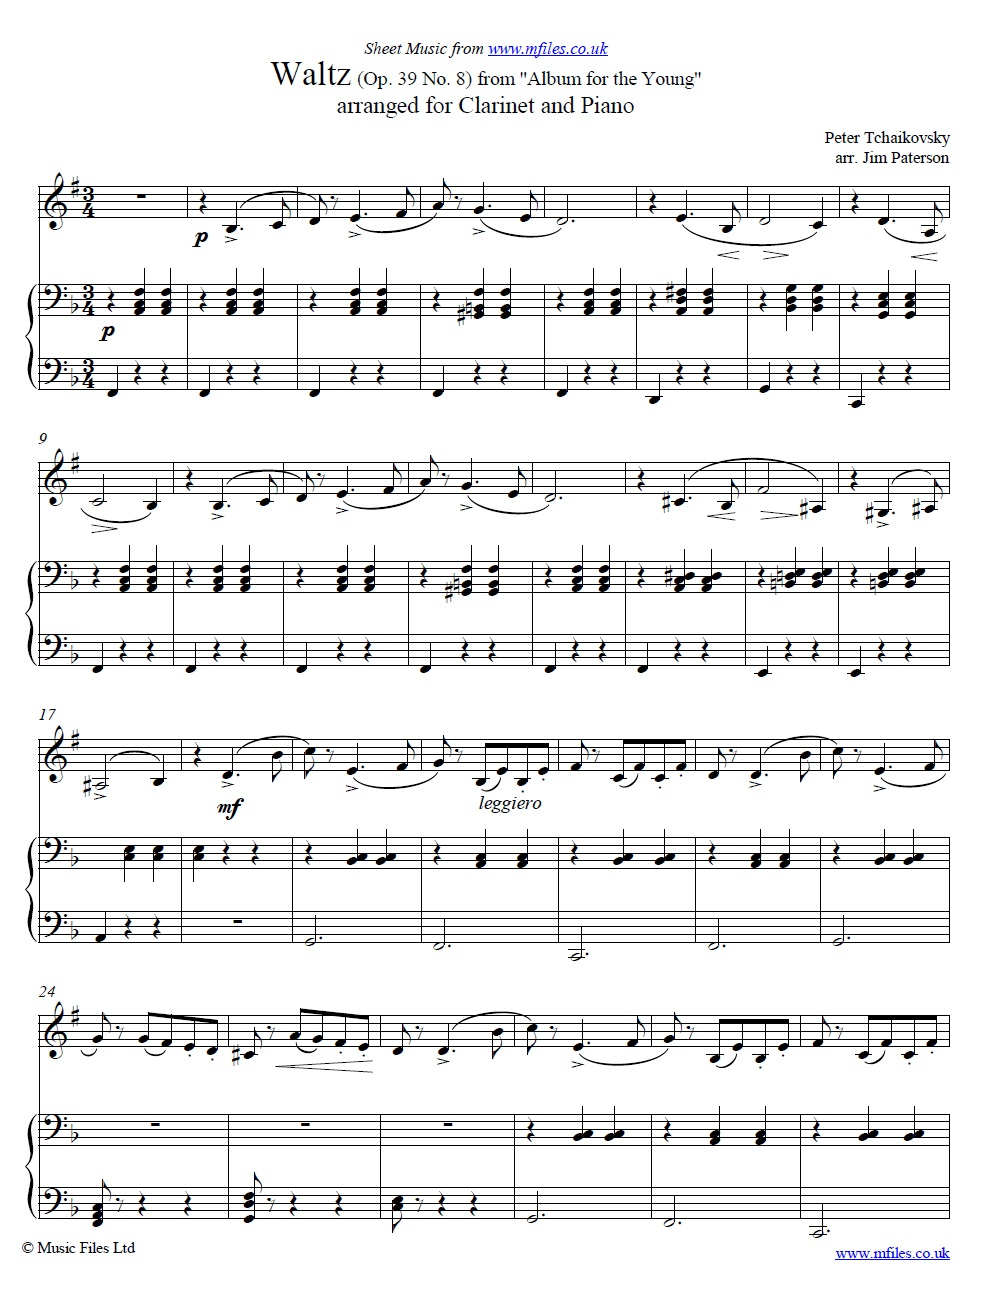 Waltz from Album for the Young (Op.39 No.8) for clarinet in B-flat and piano - sheet music 1st page